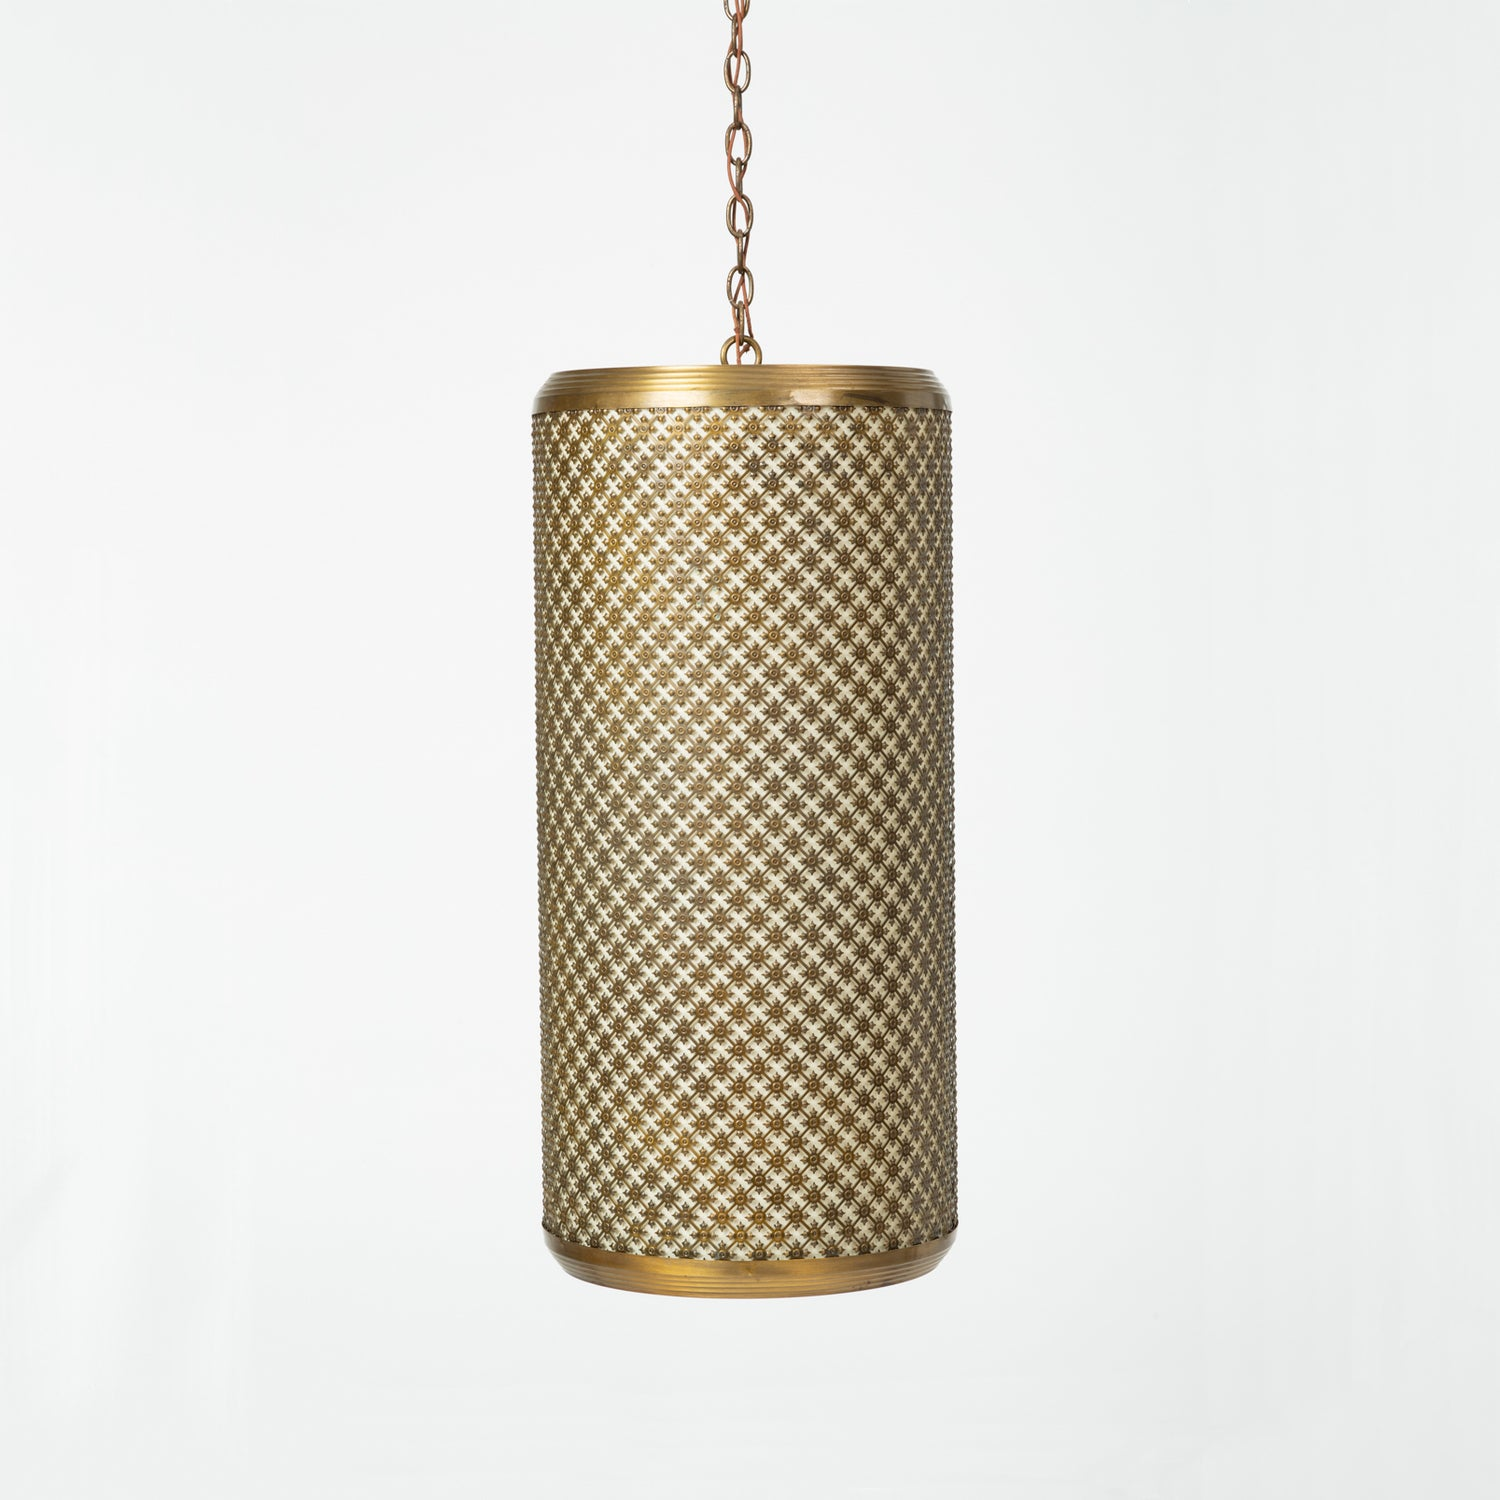 Metal Grated Pendant Light Fixtures by The Feldman Company